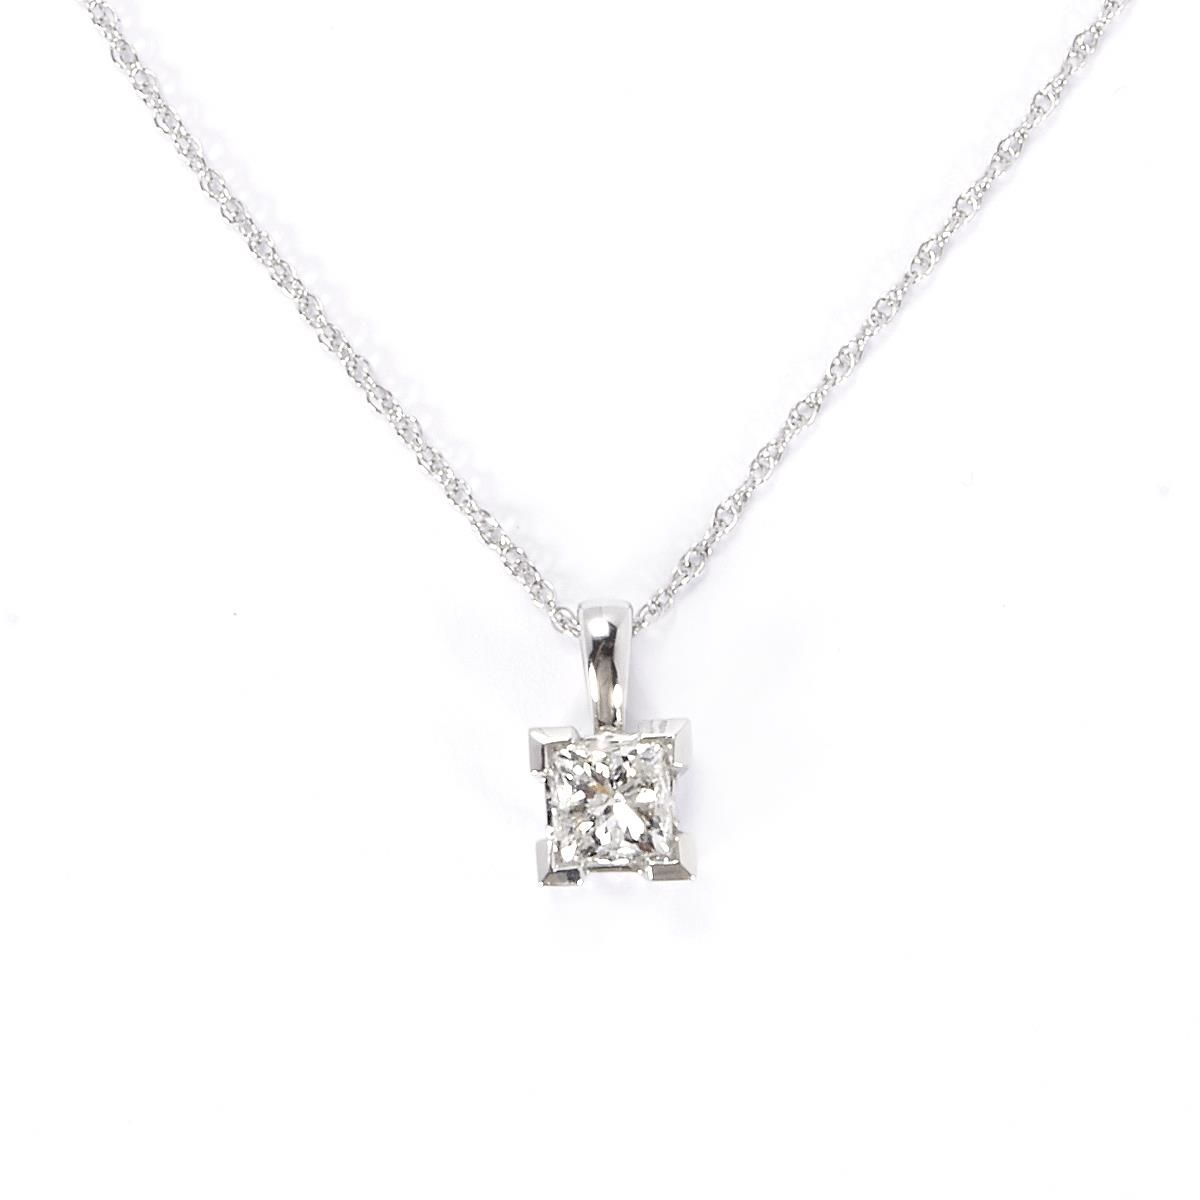 image s jewellery design diamond gold necklace princess berry berrys pendant offset white square cut